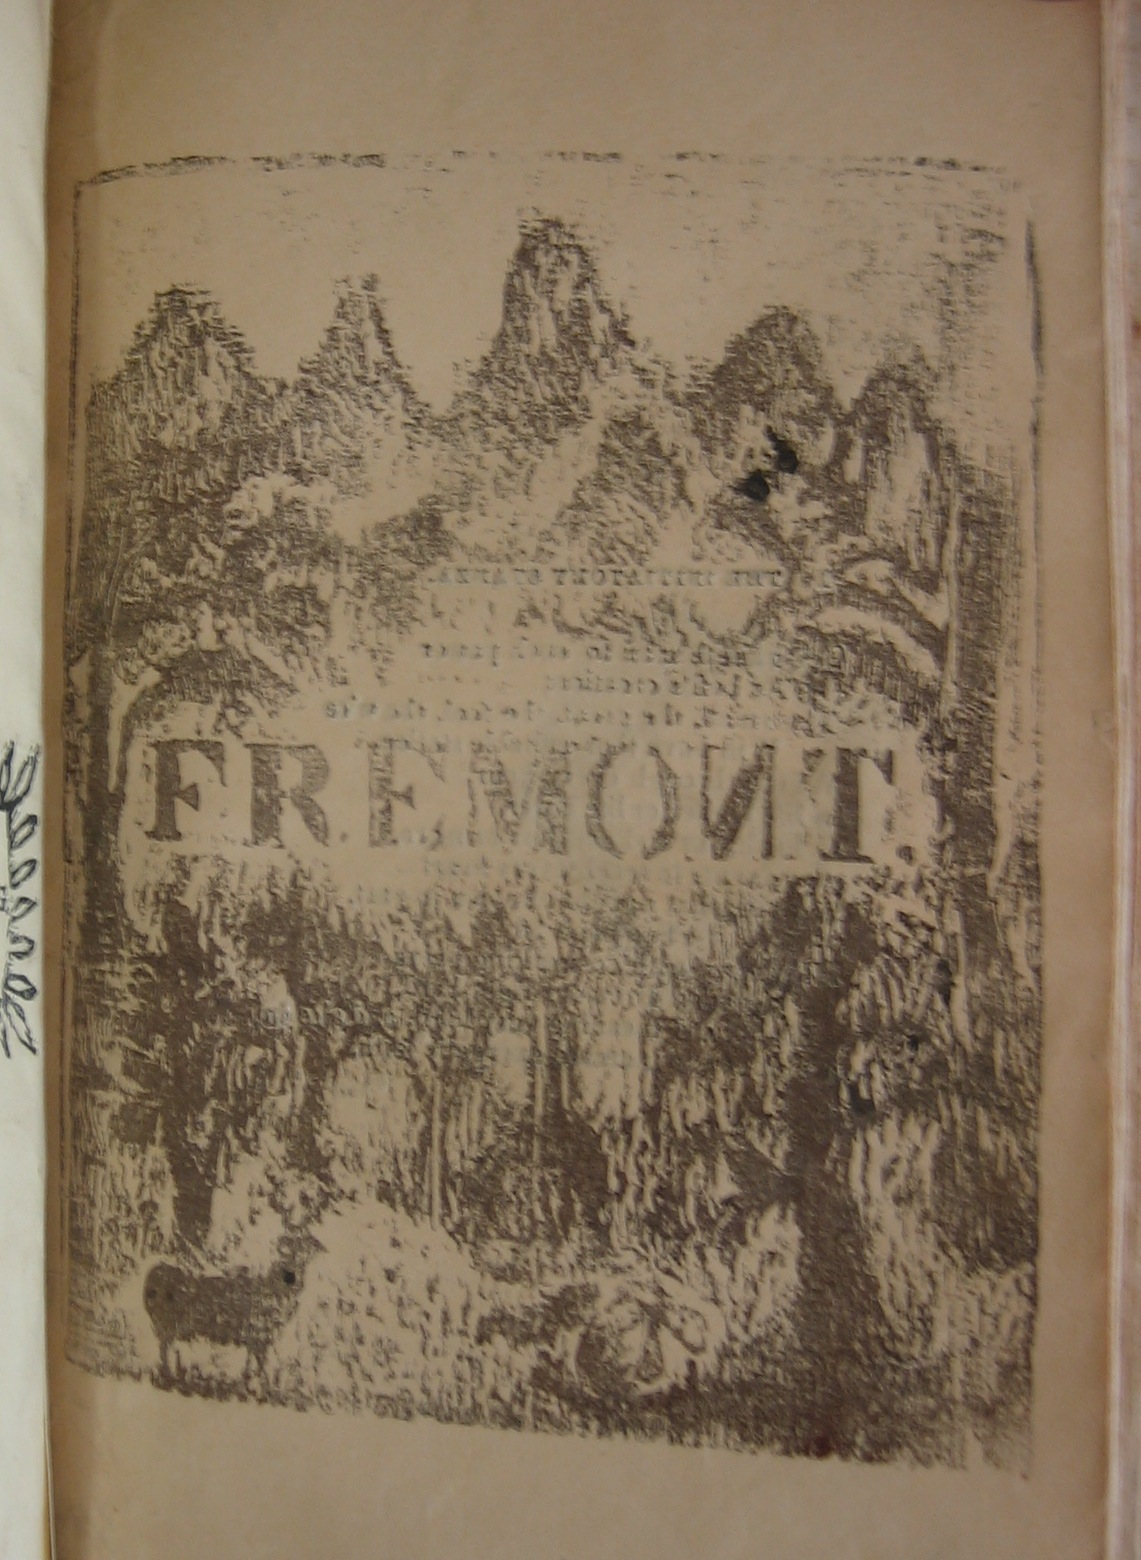 Front cover of Cook's Fremont: a poem (Salem, Mass., 1856) bound with The Eucleia (Salem, Mass., ca. 1865) (PS1378 .C7 1865; Robert & Virginia Tunstall Trust Fund)